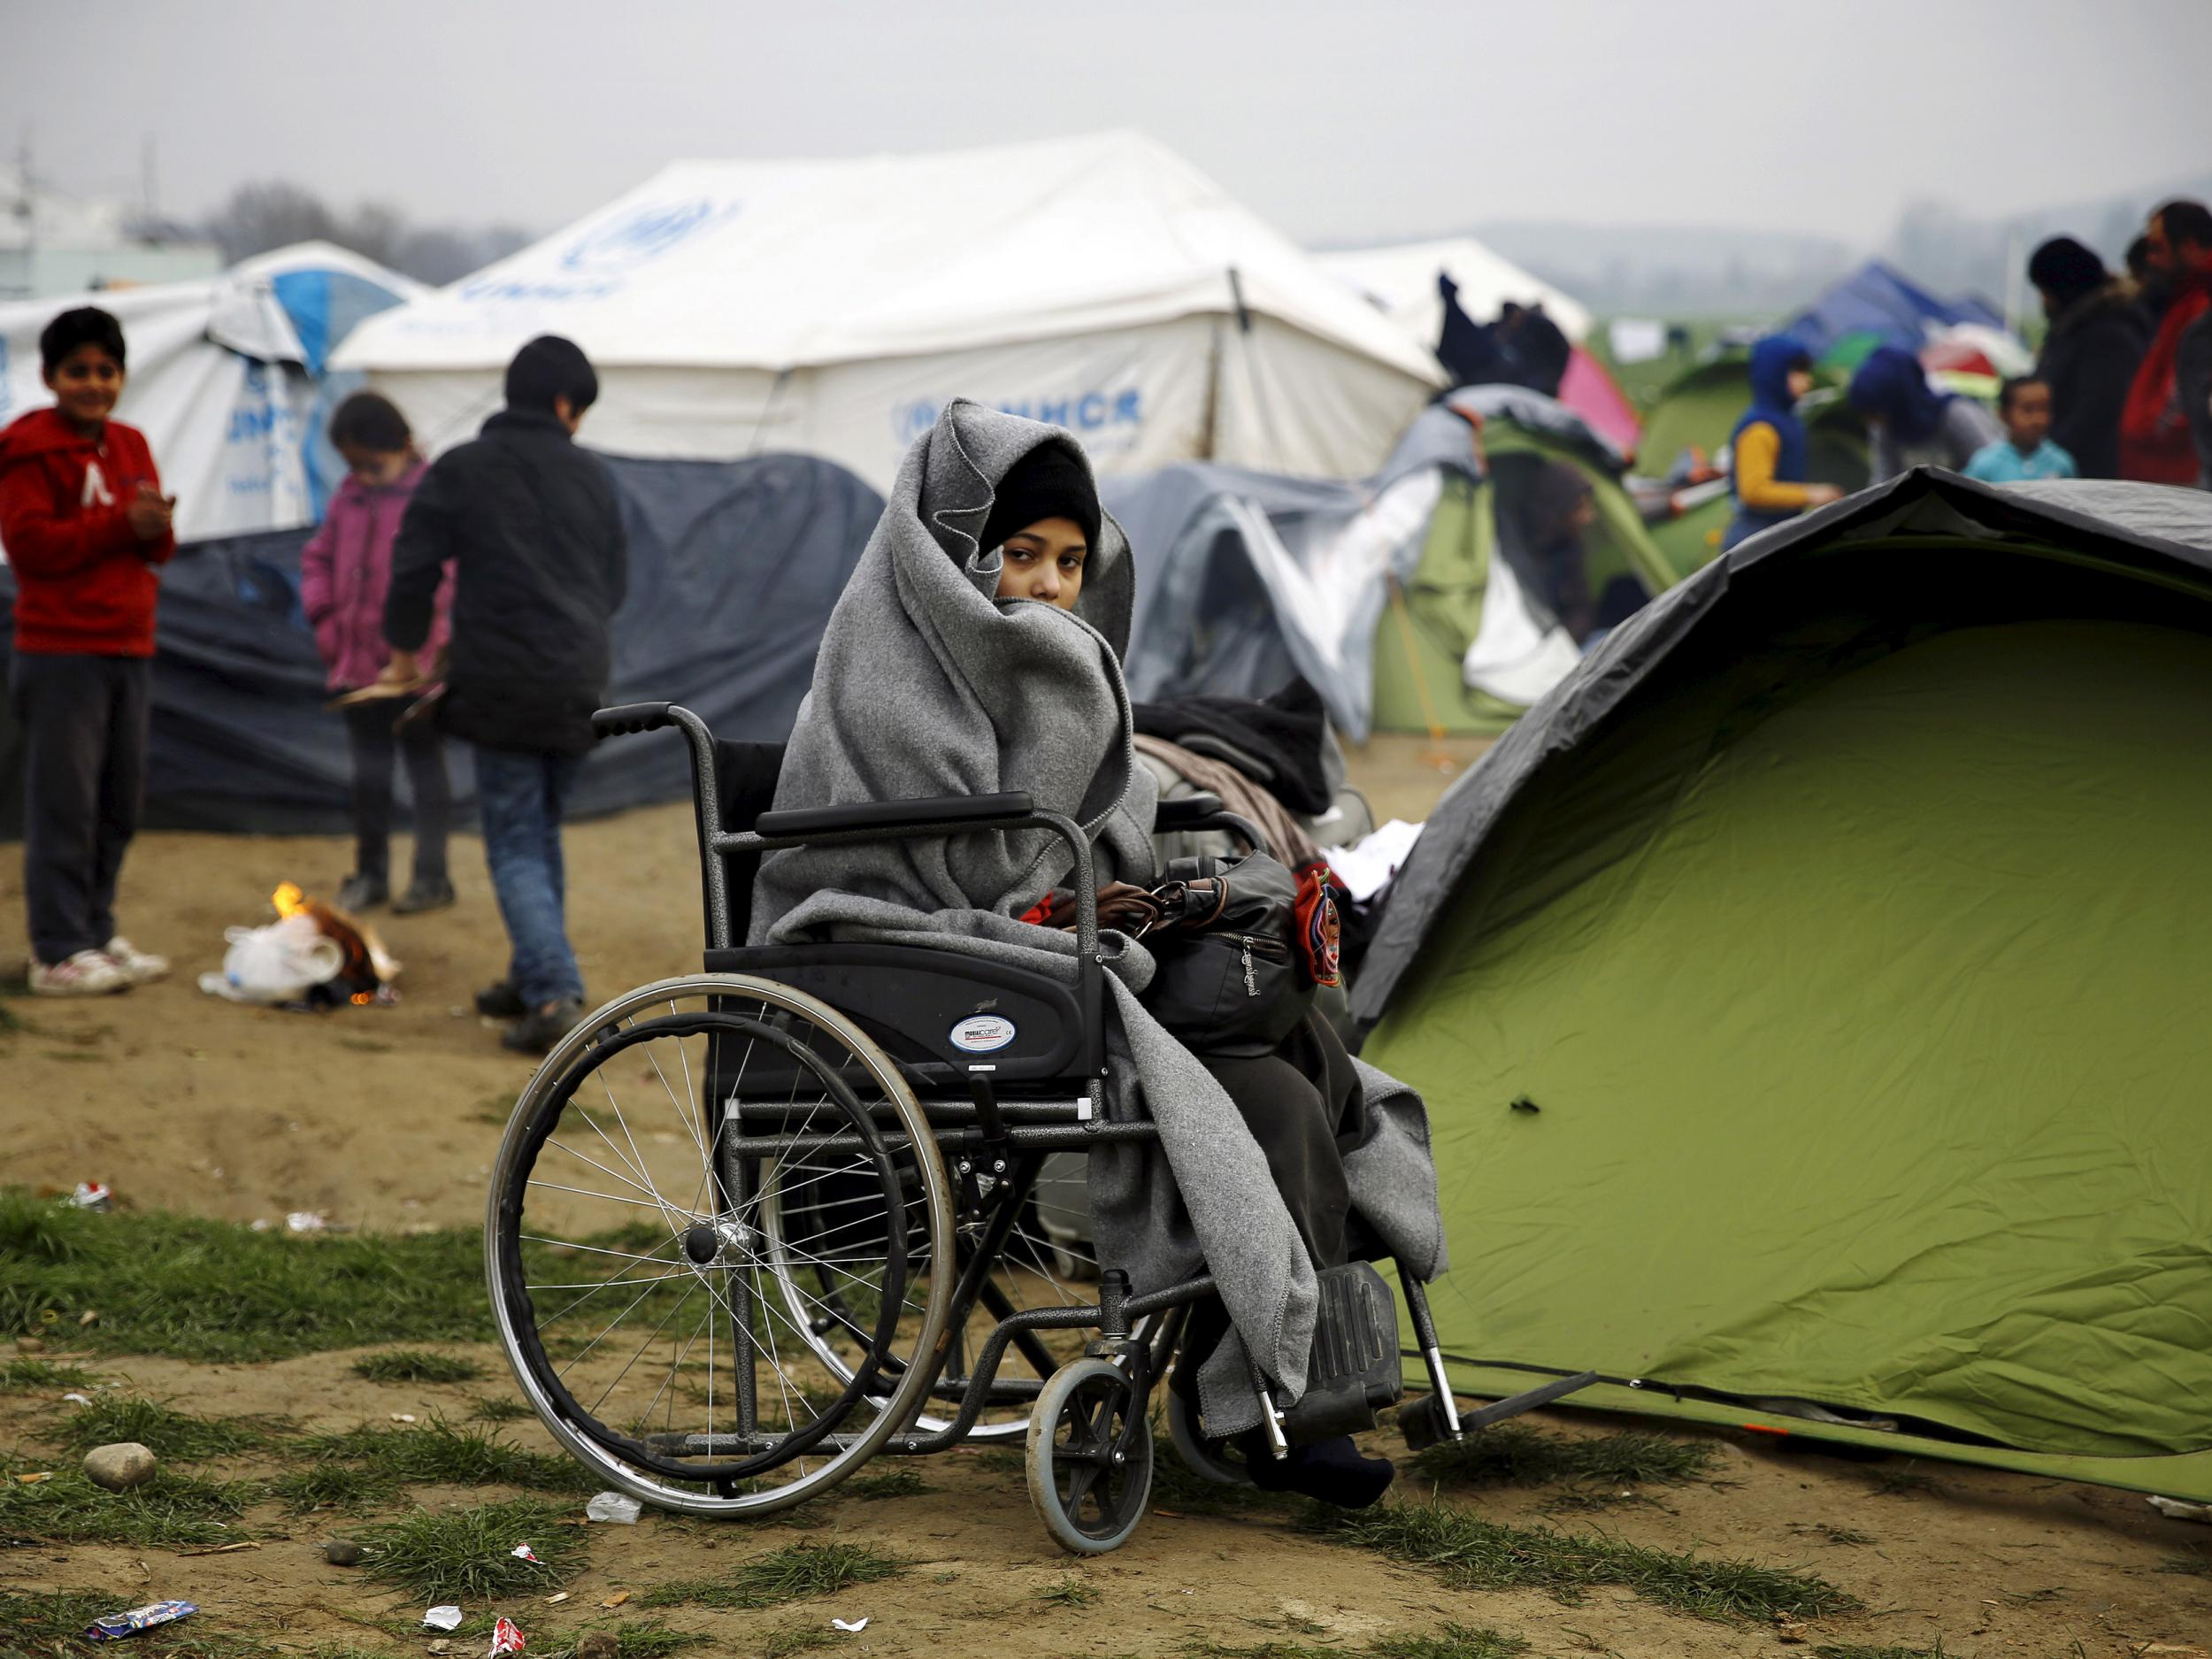 news home disabled child refugees suspend entry office resettlement unhcr united nations lord dubs